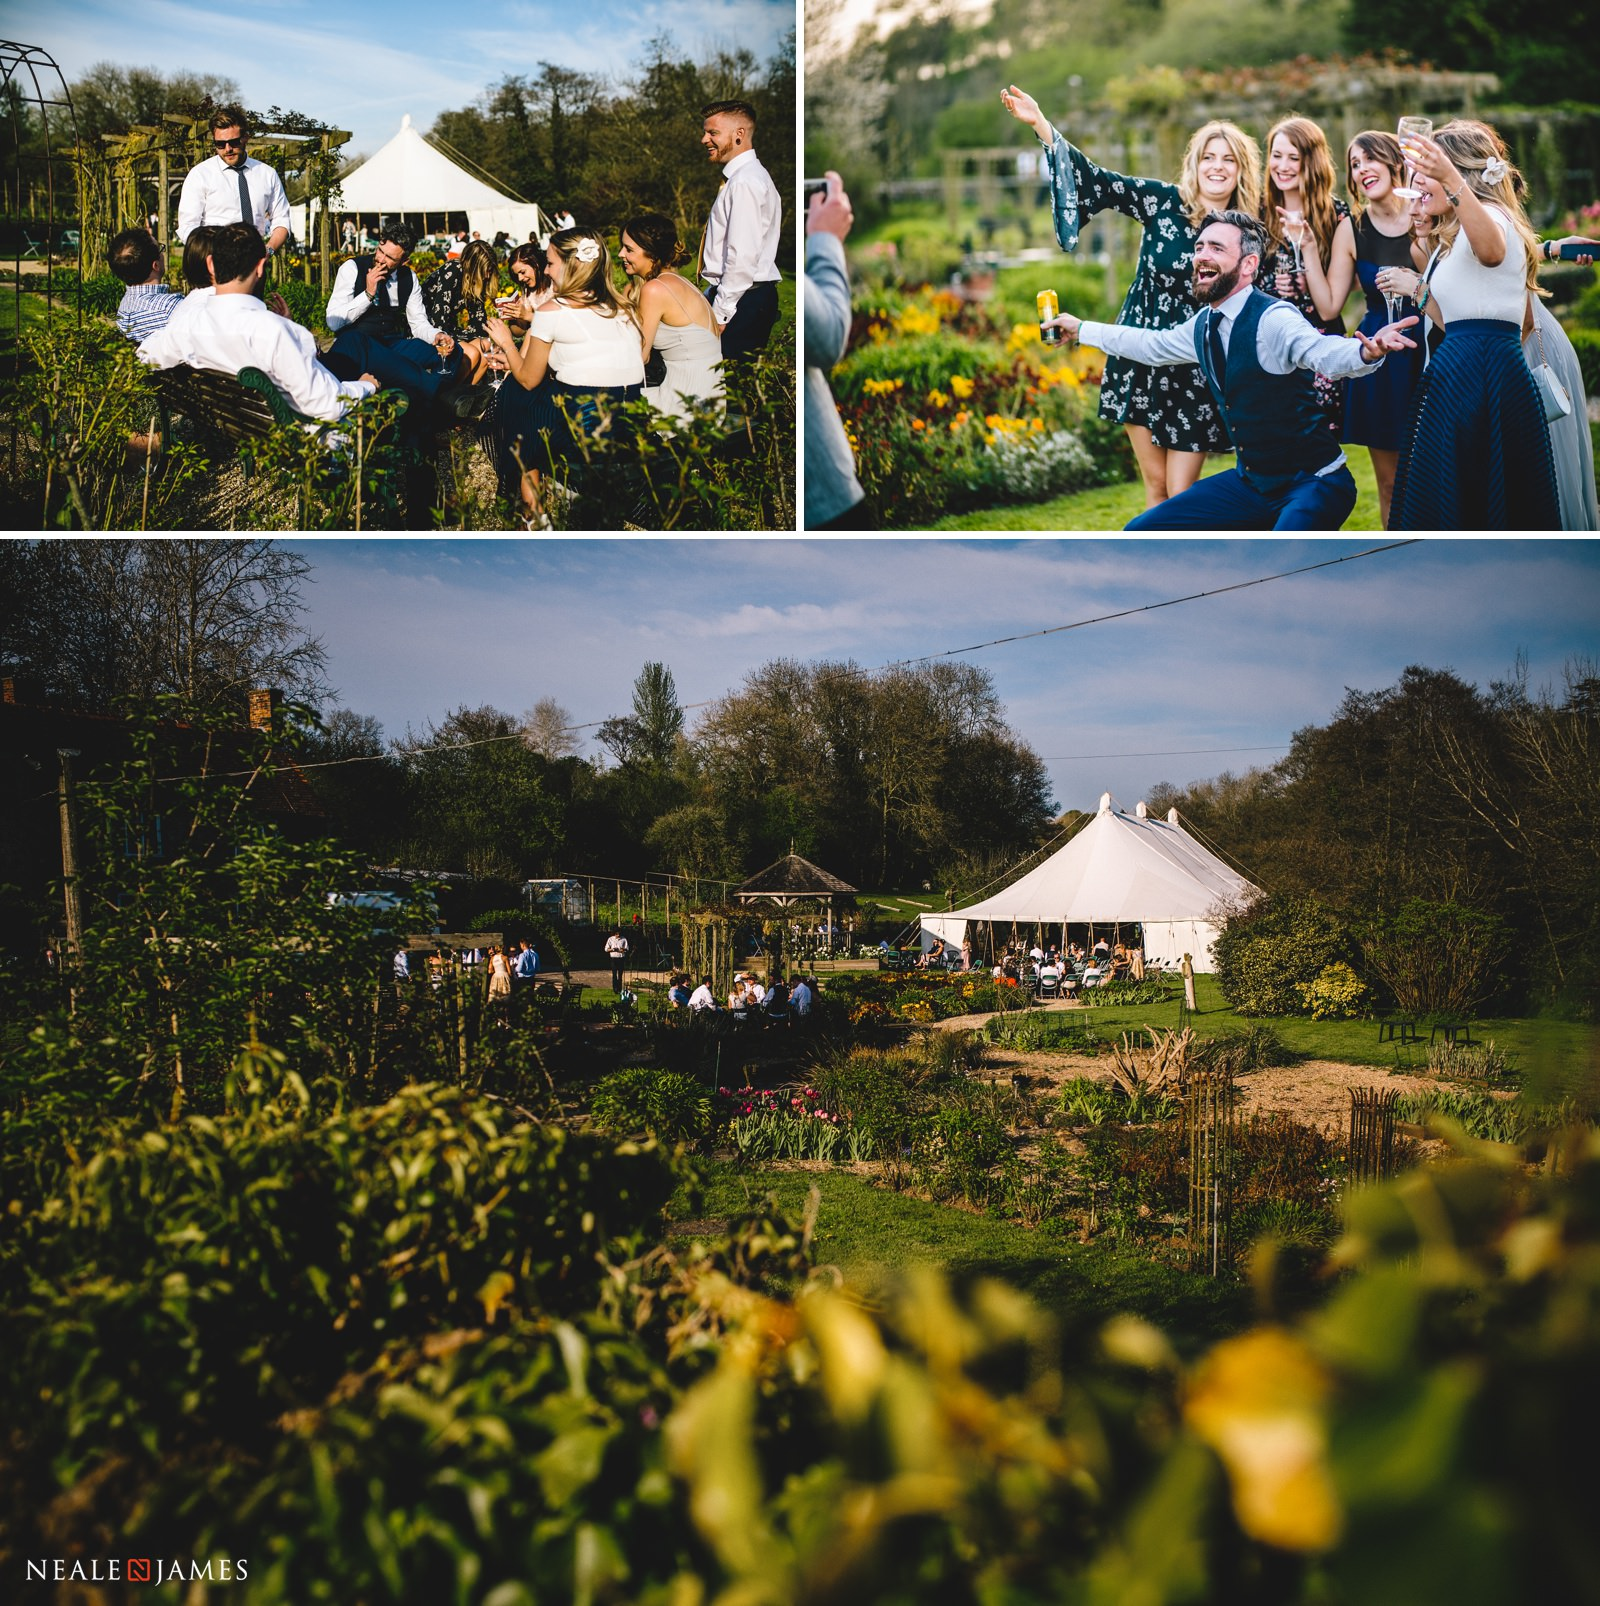 Family and friends having a fantastic time during a wedding reception in the gorgeous country cottage gardens of Gants Mill